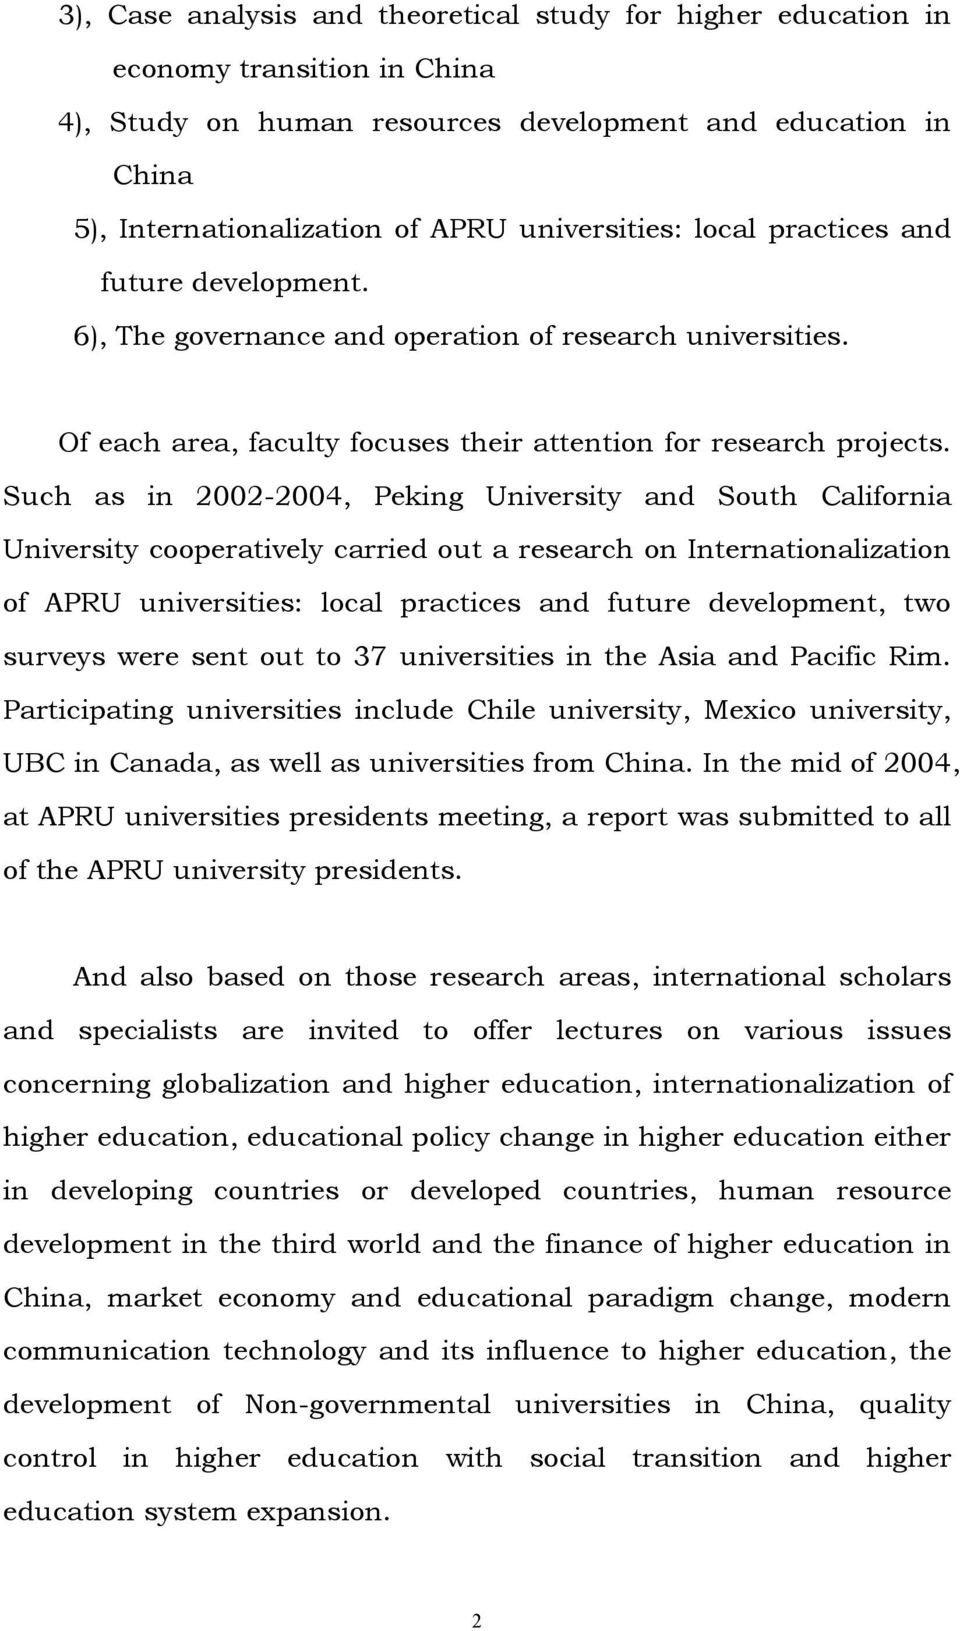 Such as in 2002-2004, Peking University and South California University cooperatively carried out a research on Internationalization of APRU universities: local practices and future development, two